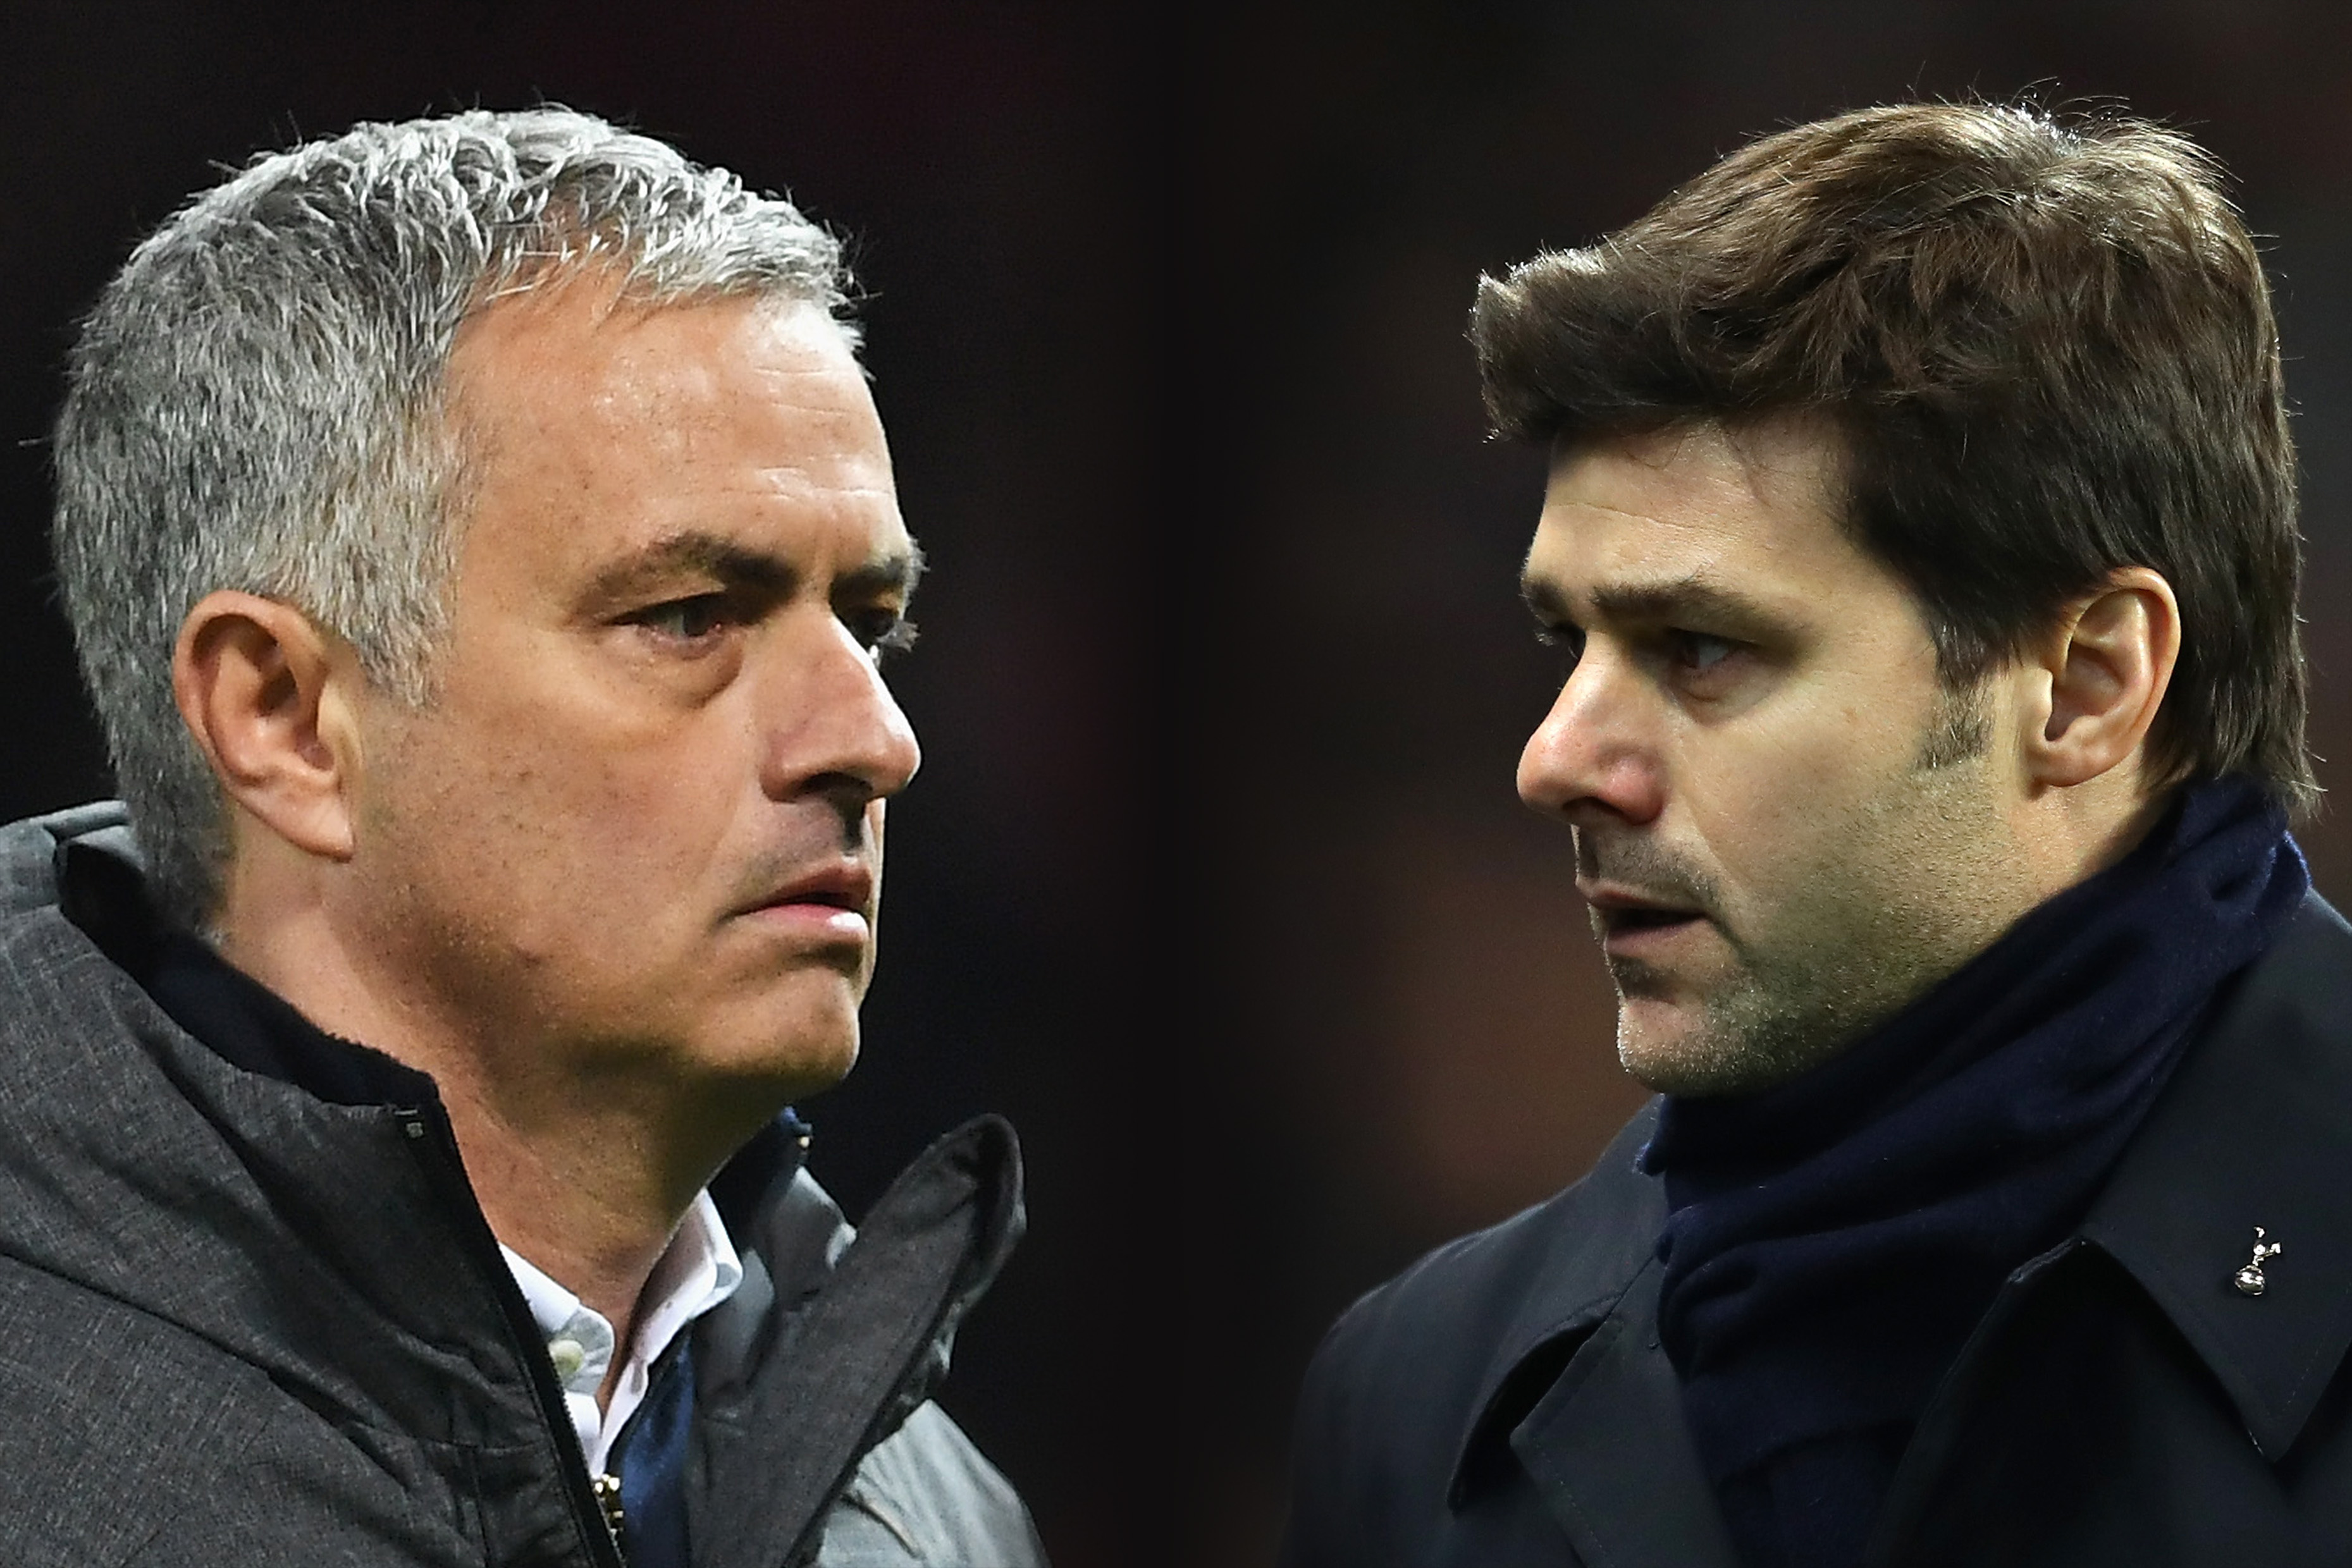 'I'd rather put Come Dine With Me on!' – Tottenham are 'boring' under Jose Mourinho, says unhappy ex-Spurs sta thumbnail